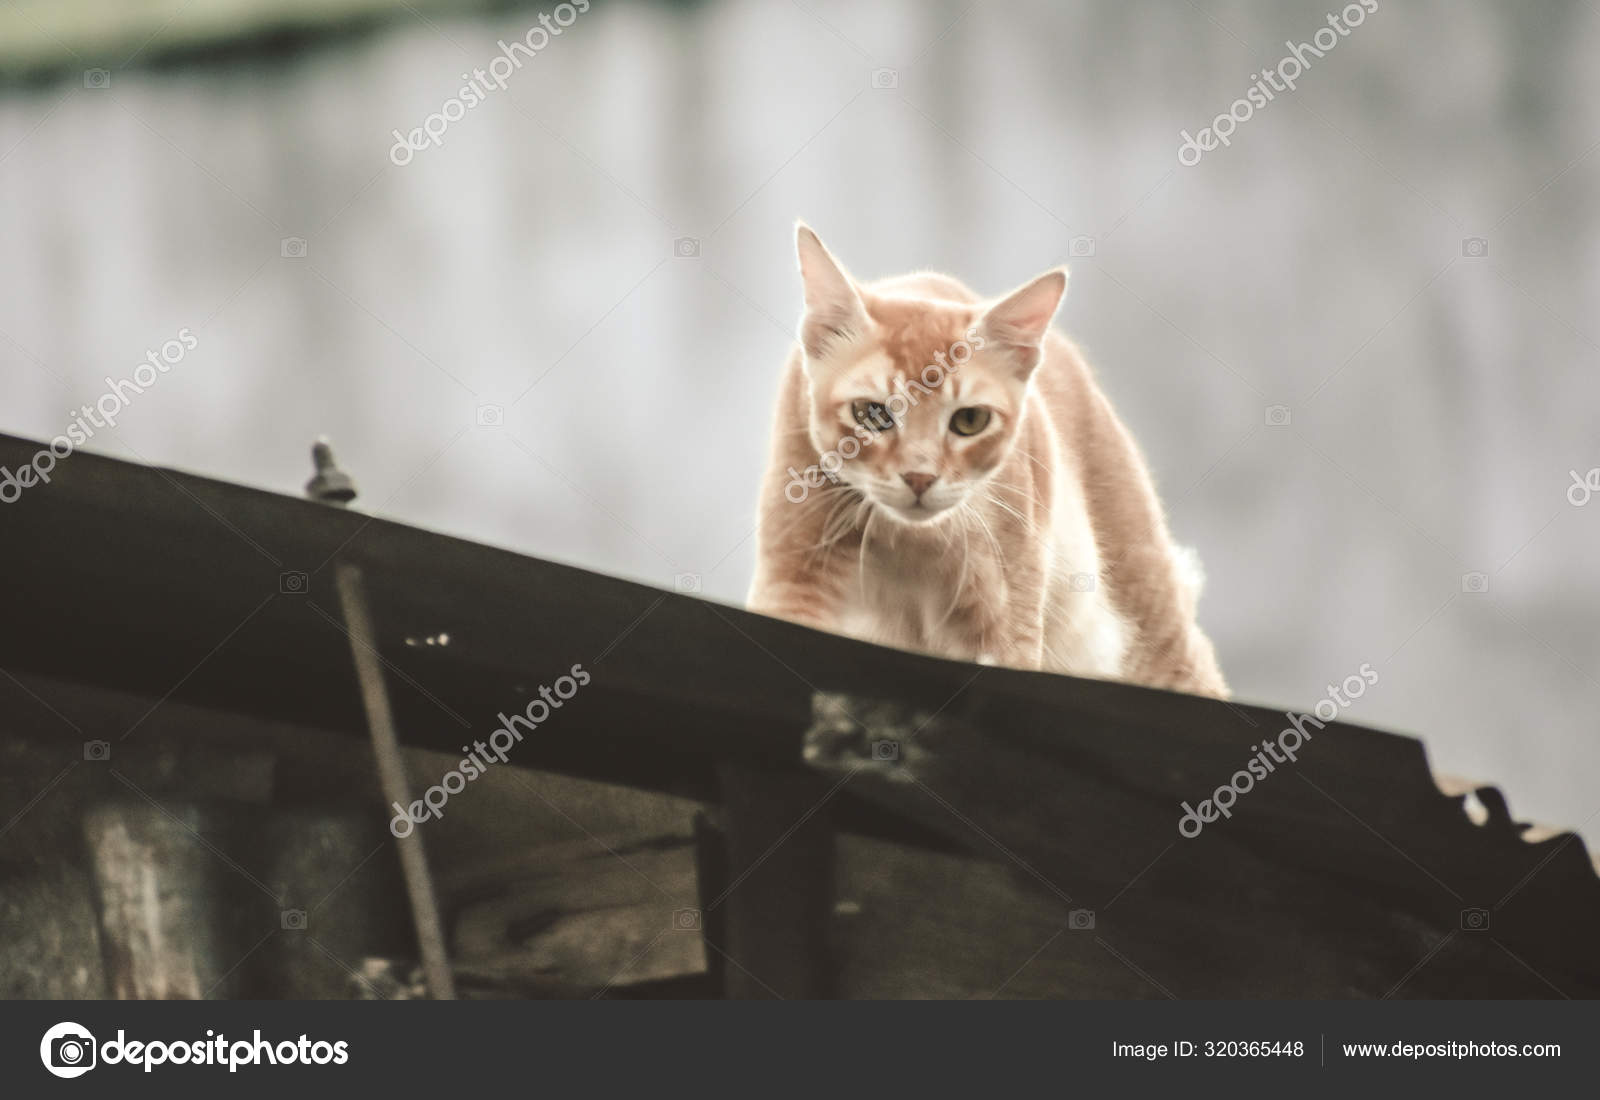 Cute Gold Color Abyssinian Cat Spotted In Hunting Mood On The Roof Of A Residential Building Black Aggressive Cat S Eyes Looking In Attention To Satisfy Its Natural Hunting Instincts Close Up High